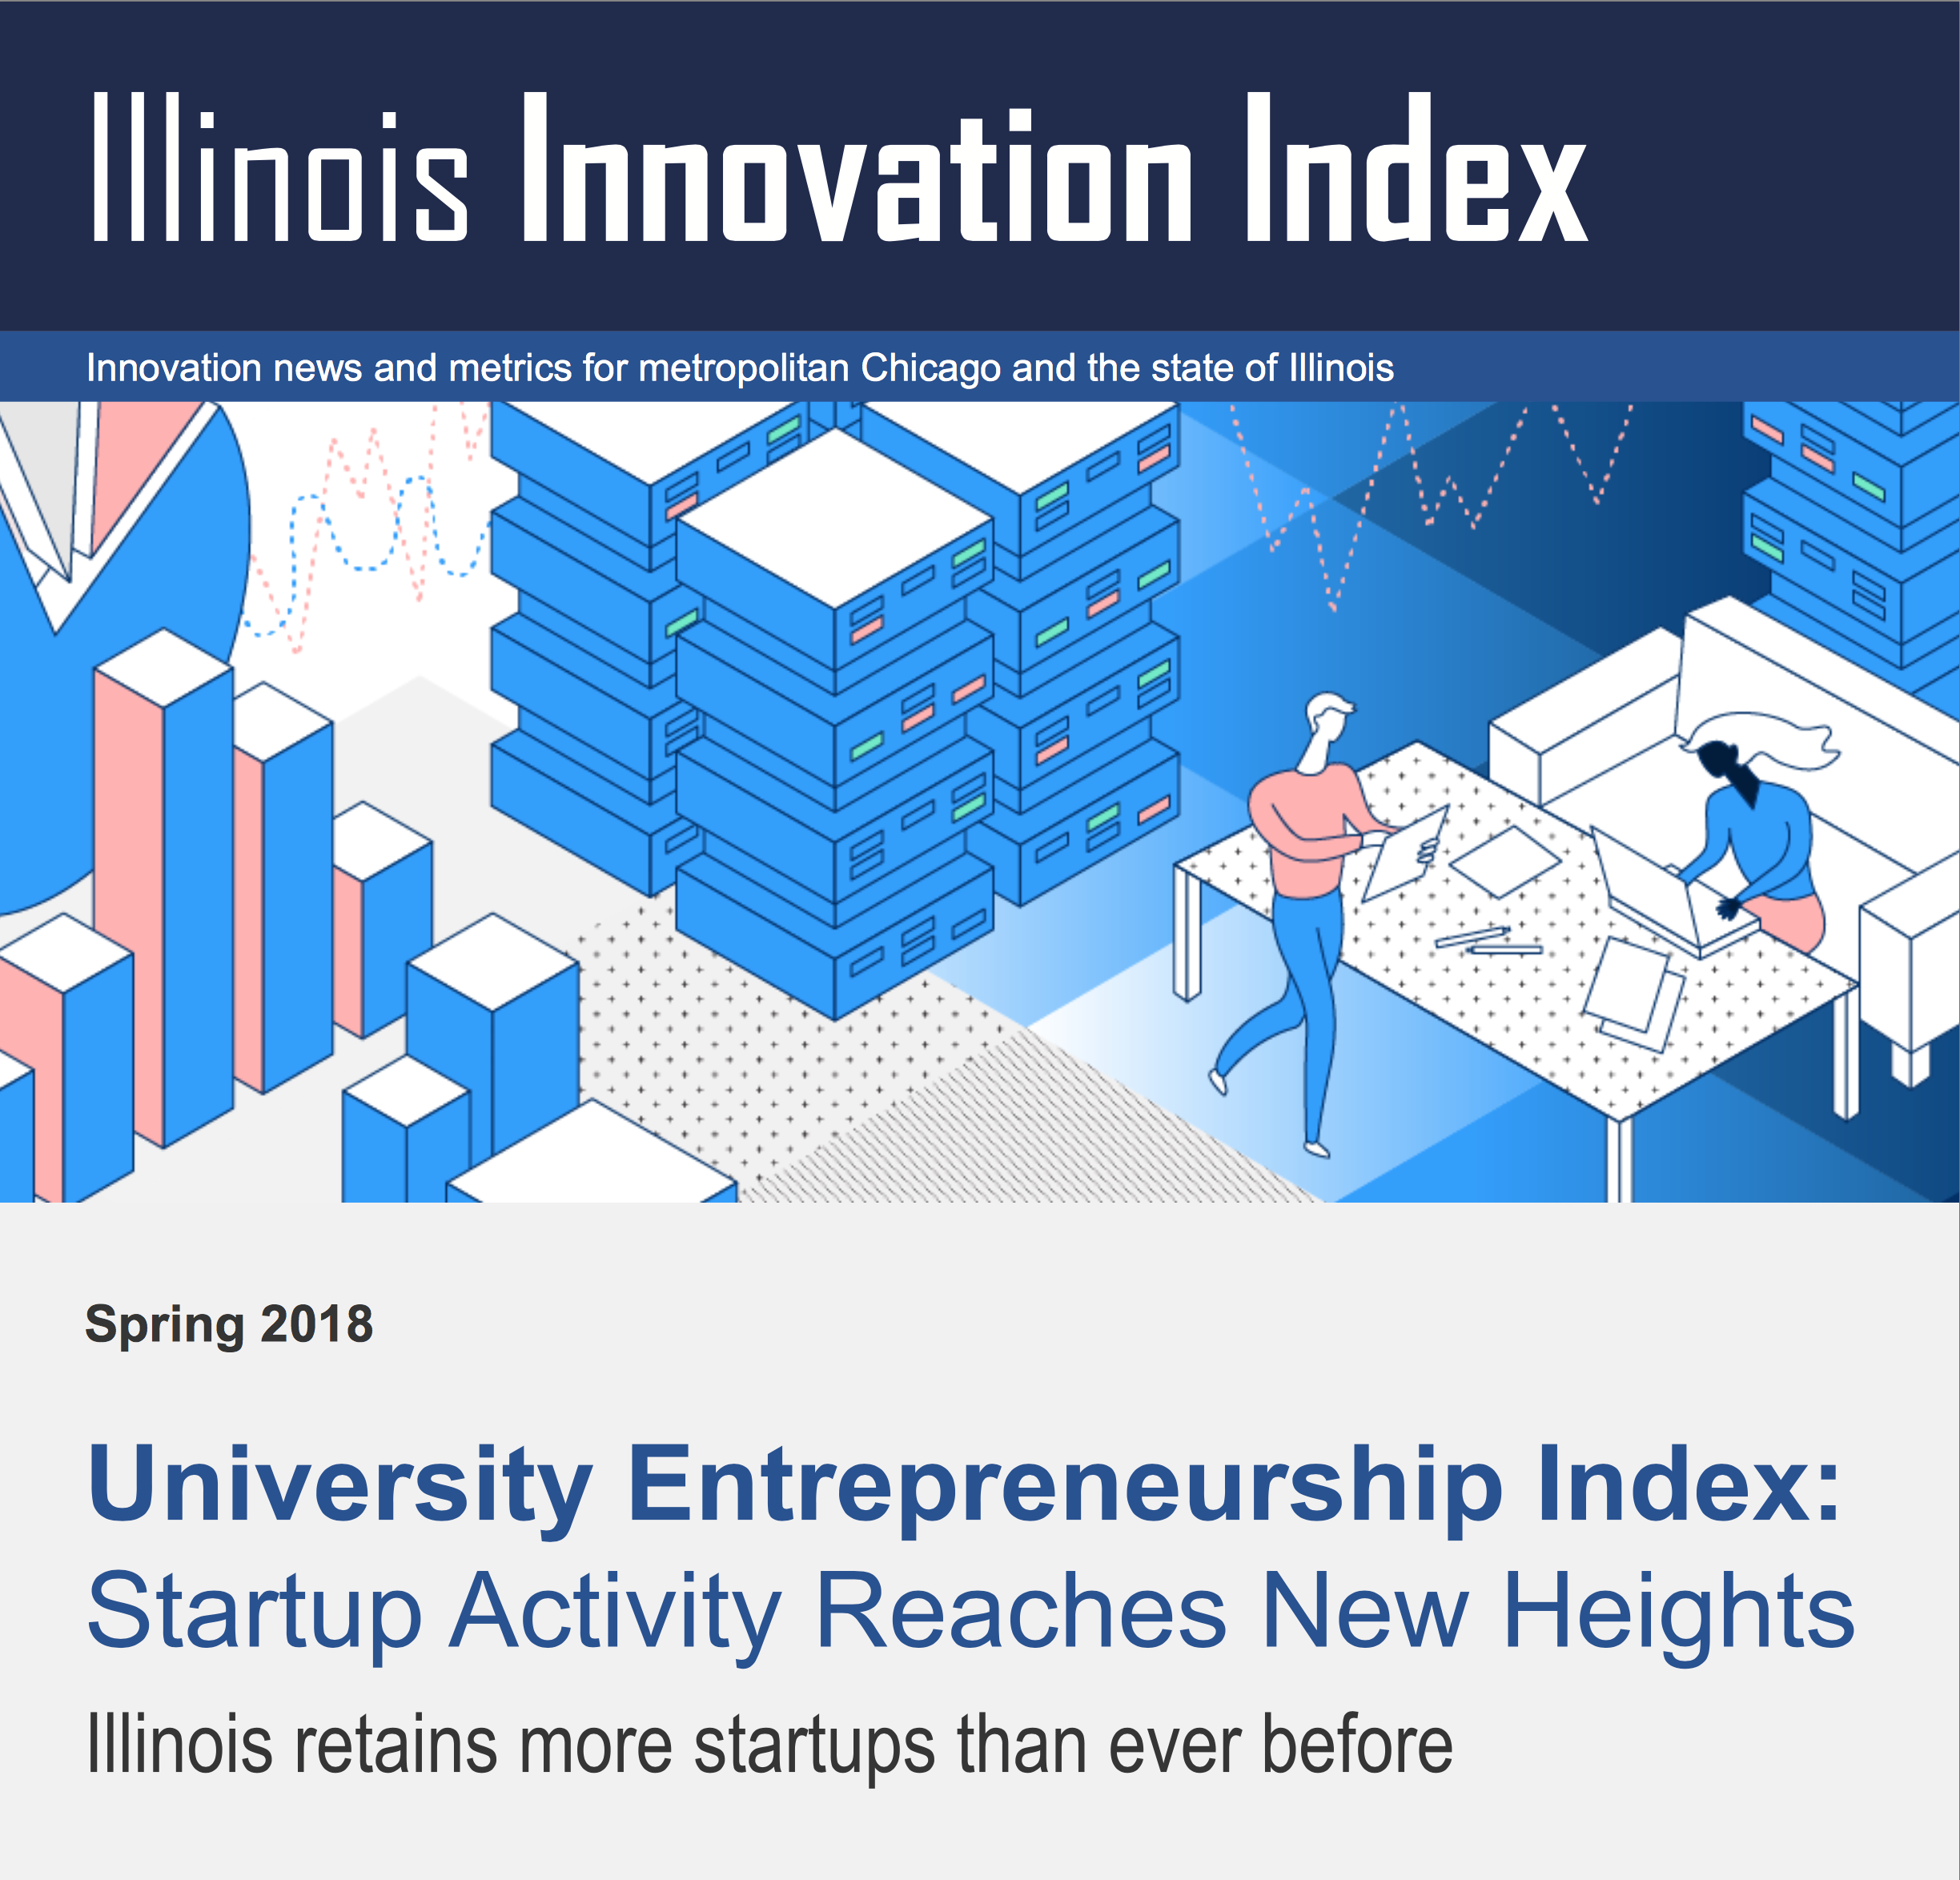 Illinois Innovation Index, Spring 2018